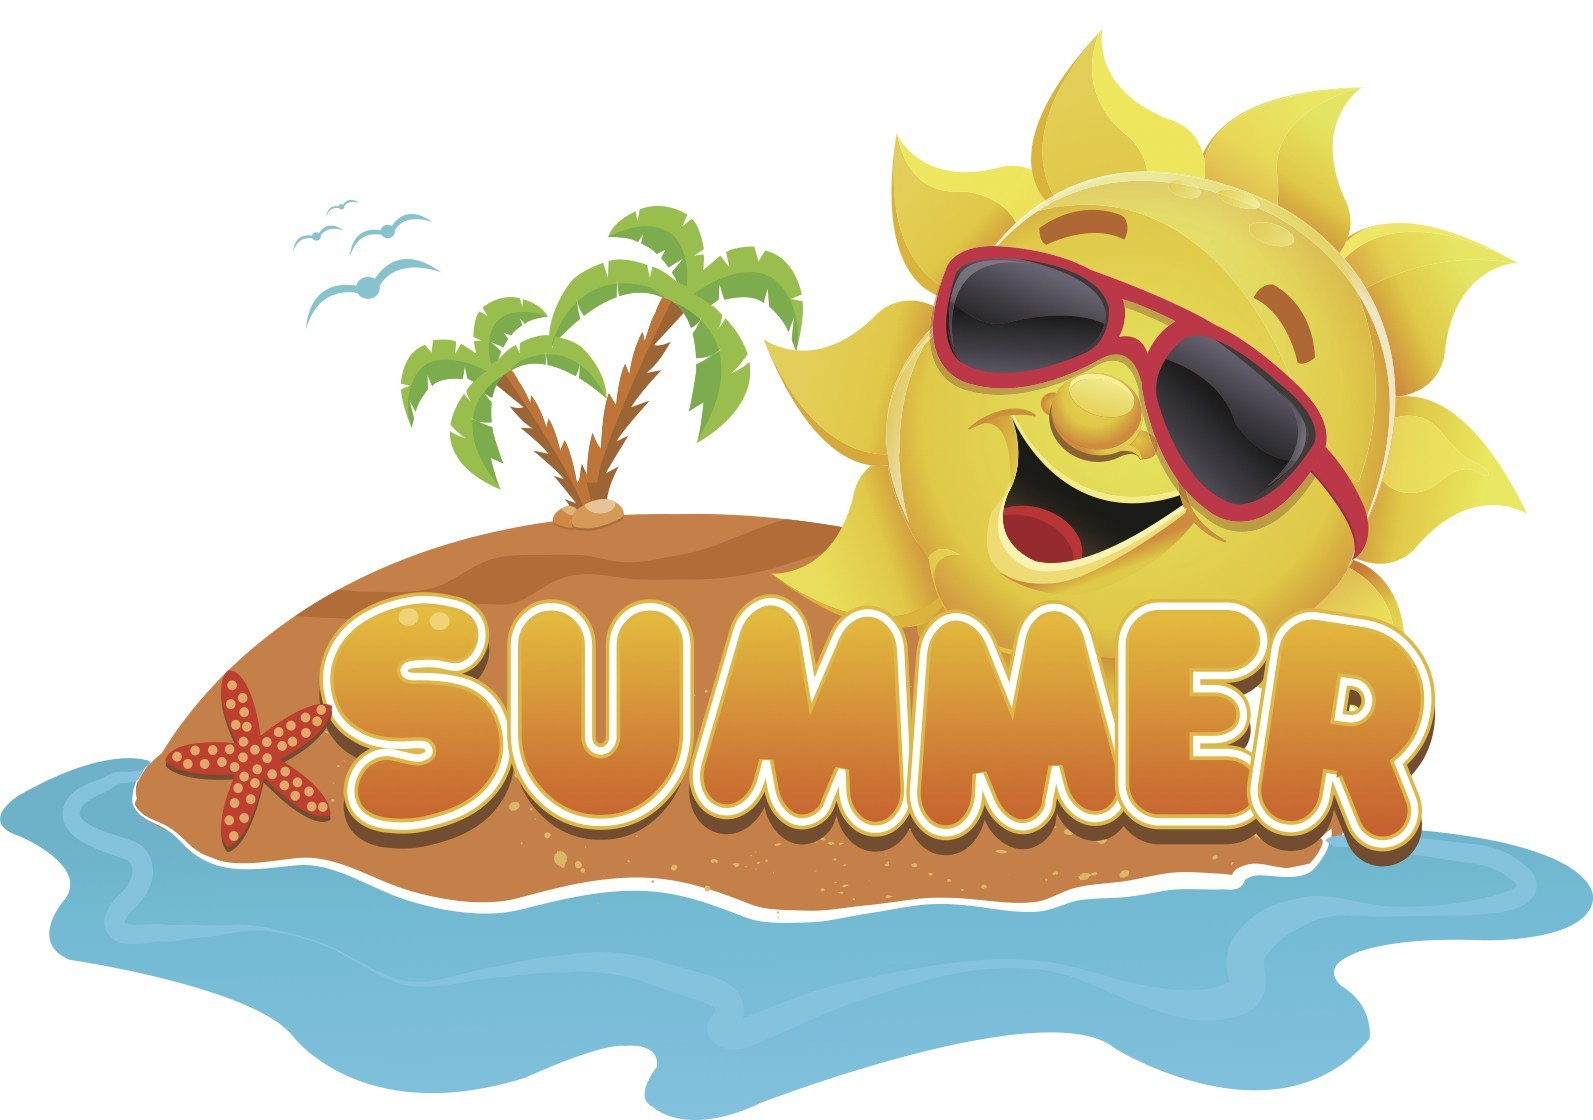 First day of summer clipart images png black and white download BCArc - First Day of Summer - png black and white download